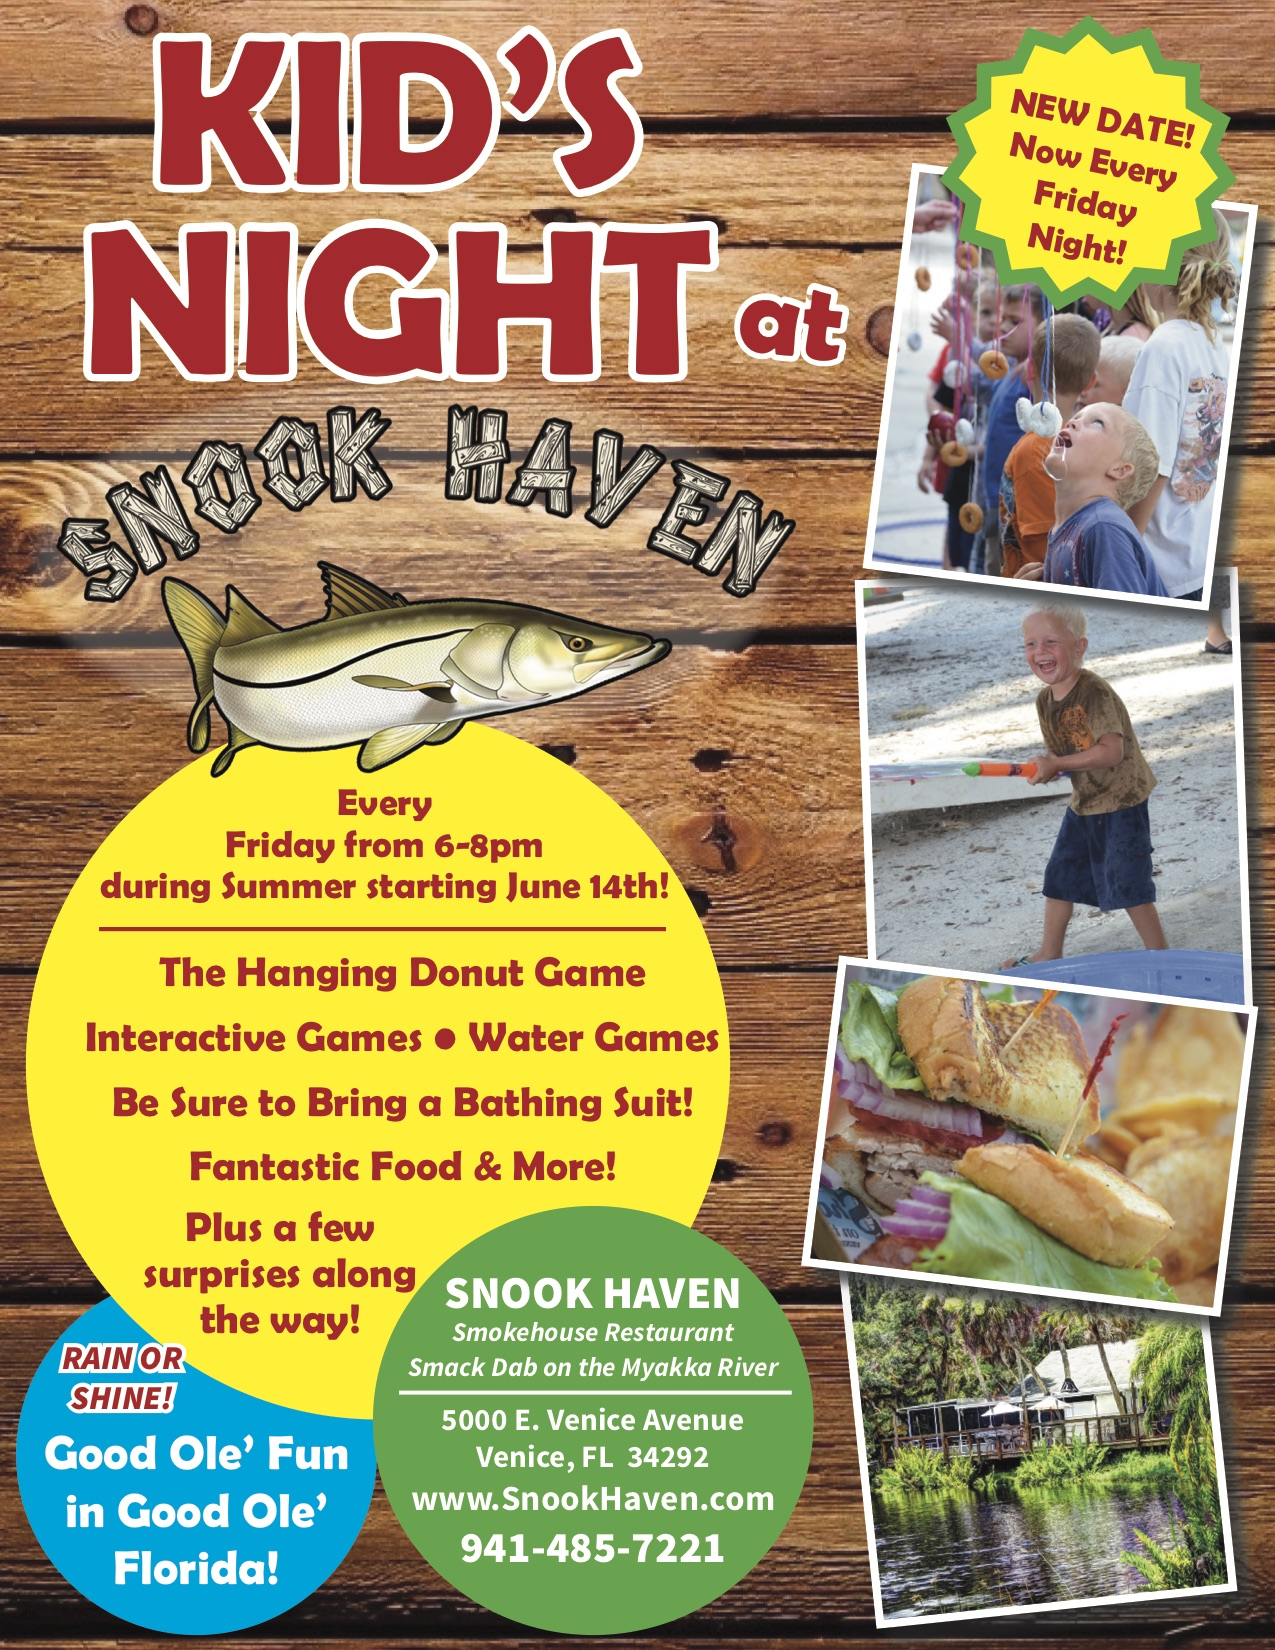 Kid's Night at Snook Haven